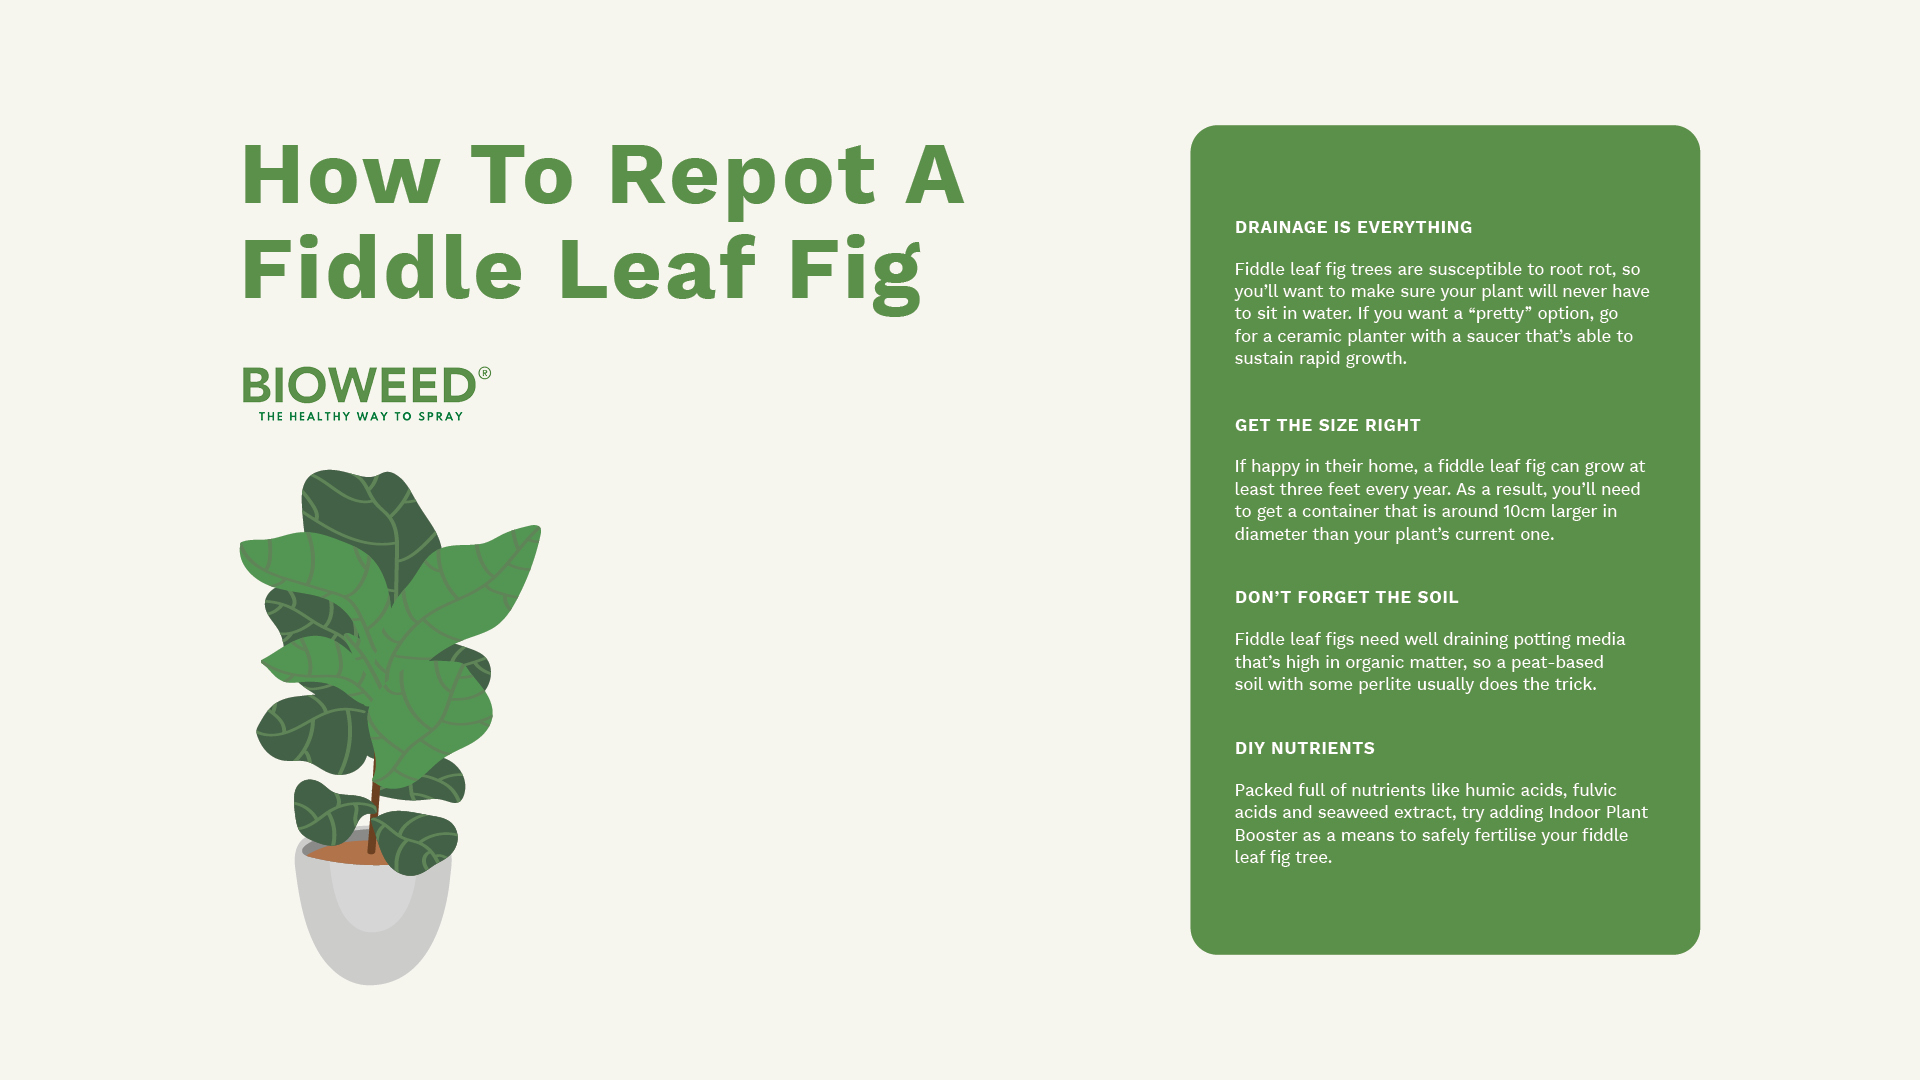 How-To-Repot-A-Fiddle-Leaf-Fig2